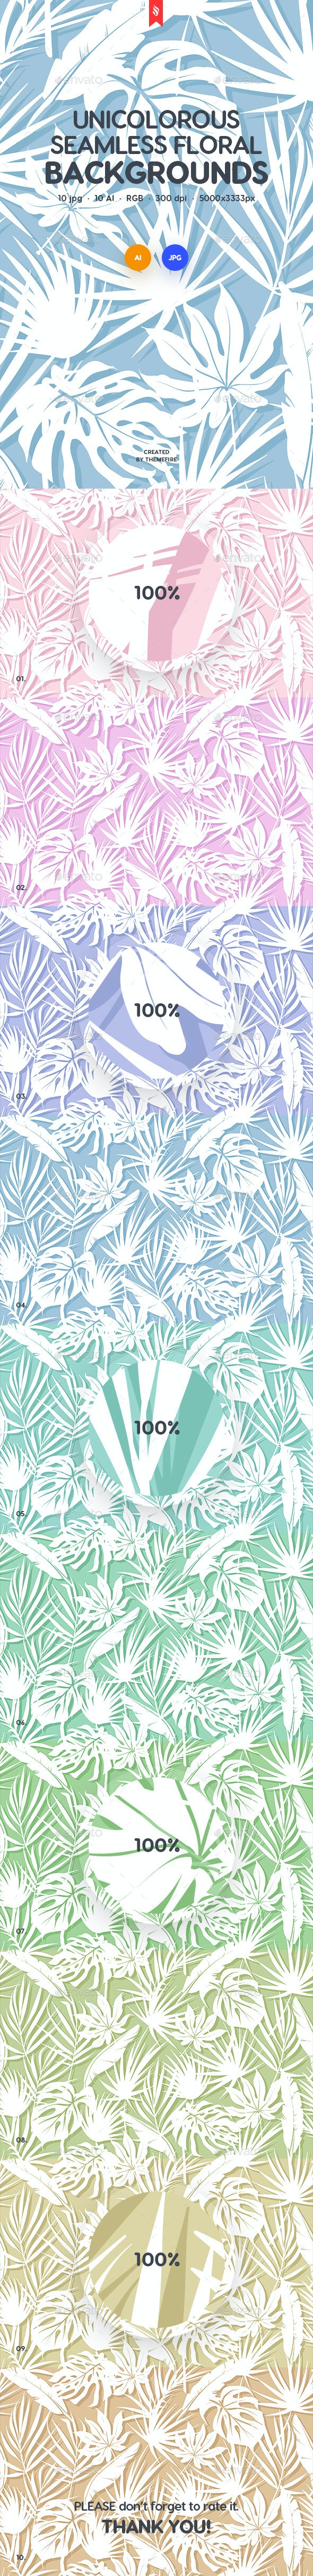 Unicolorous Seamless Floral Patterns Backgrounds By Themefire